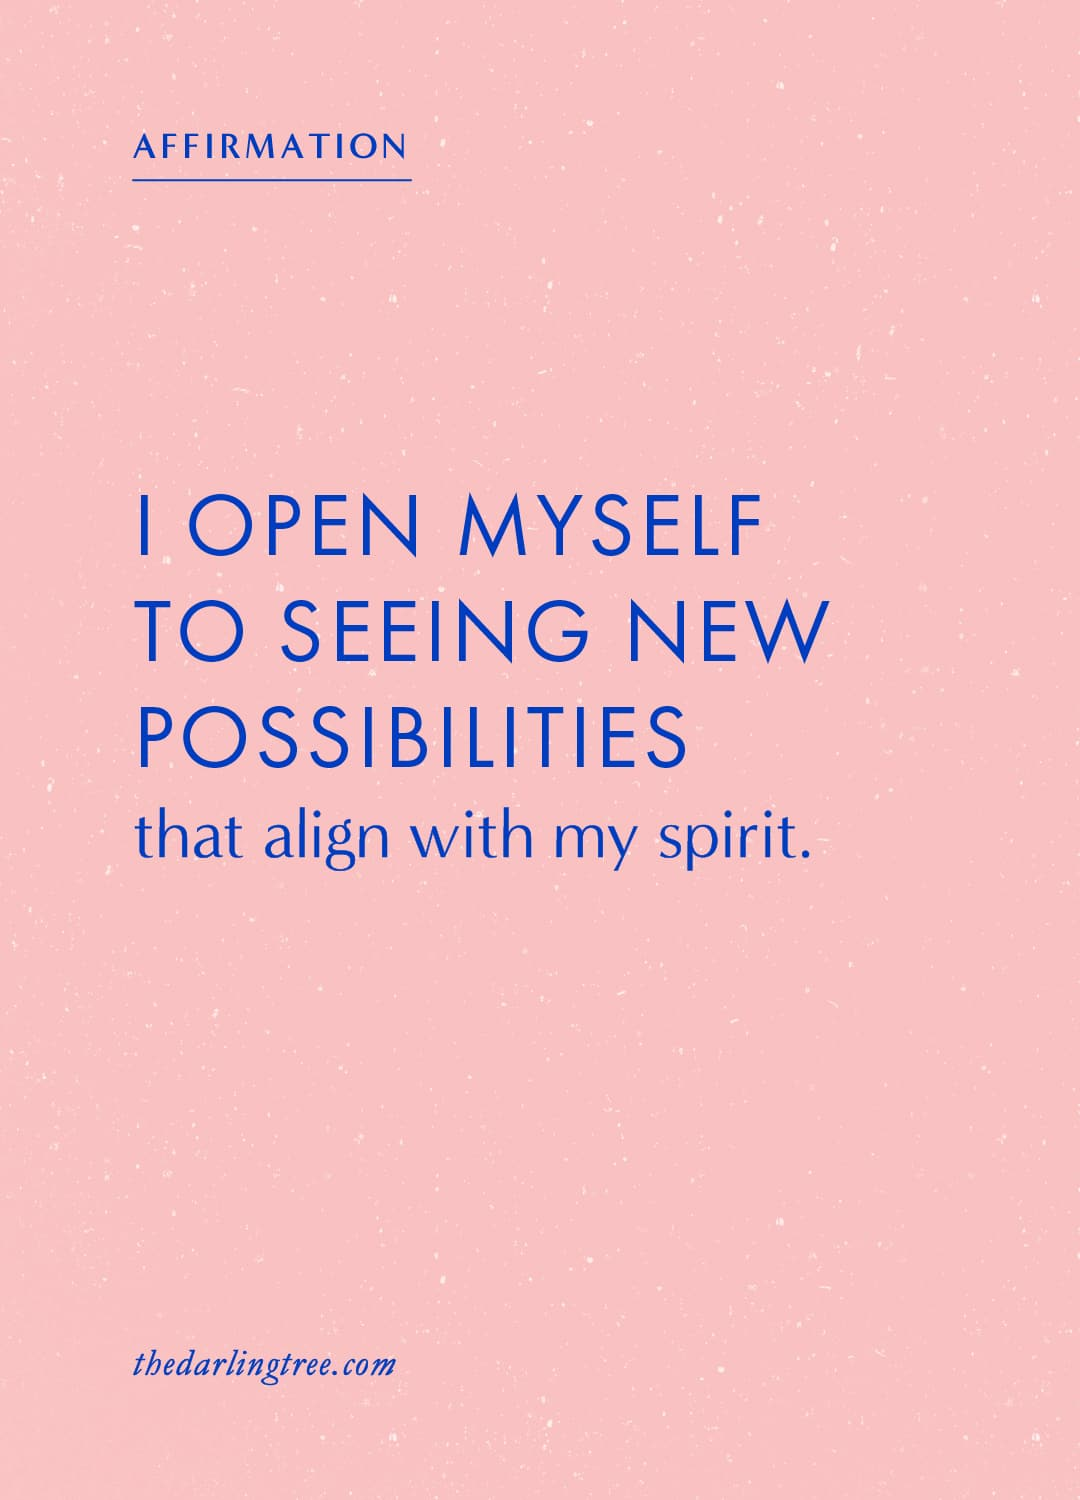 I open myself to seeing new possibilities